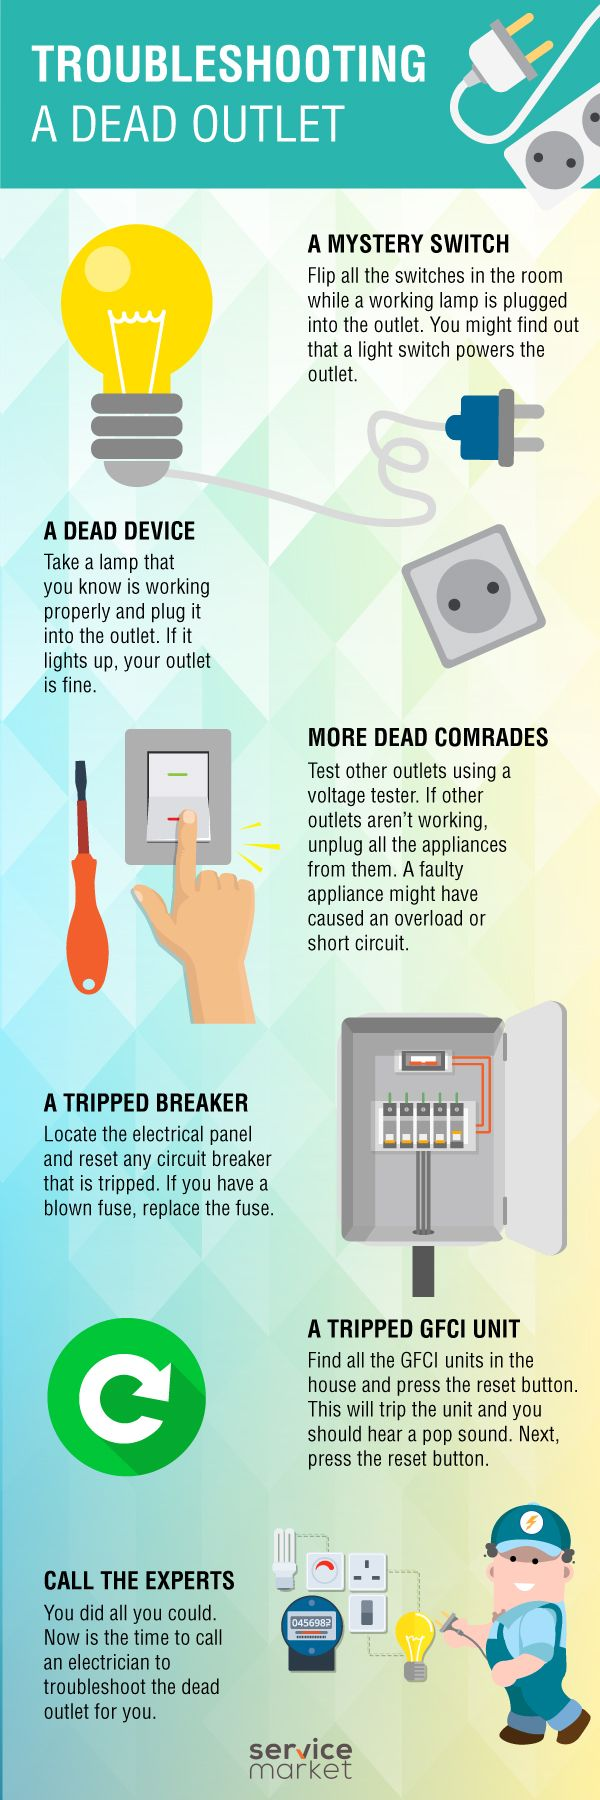 How Do Electricians In Dubai Troubleshoot Dead Outlets The Home To Reset A Tripped Circuit Breaker Electrician